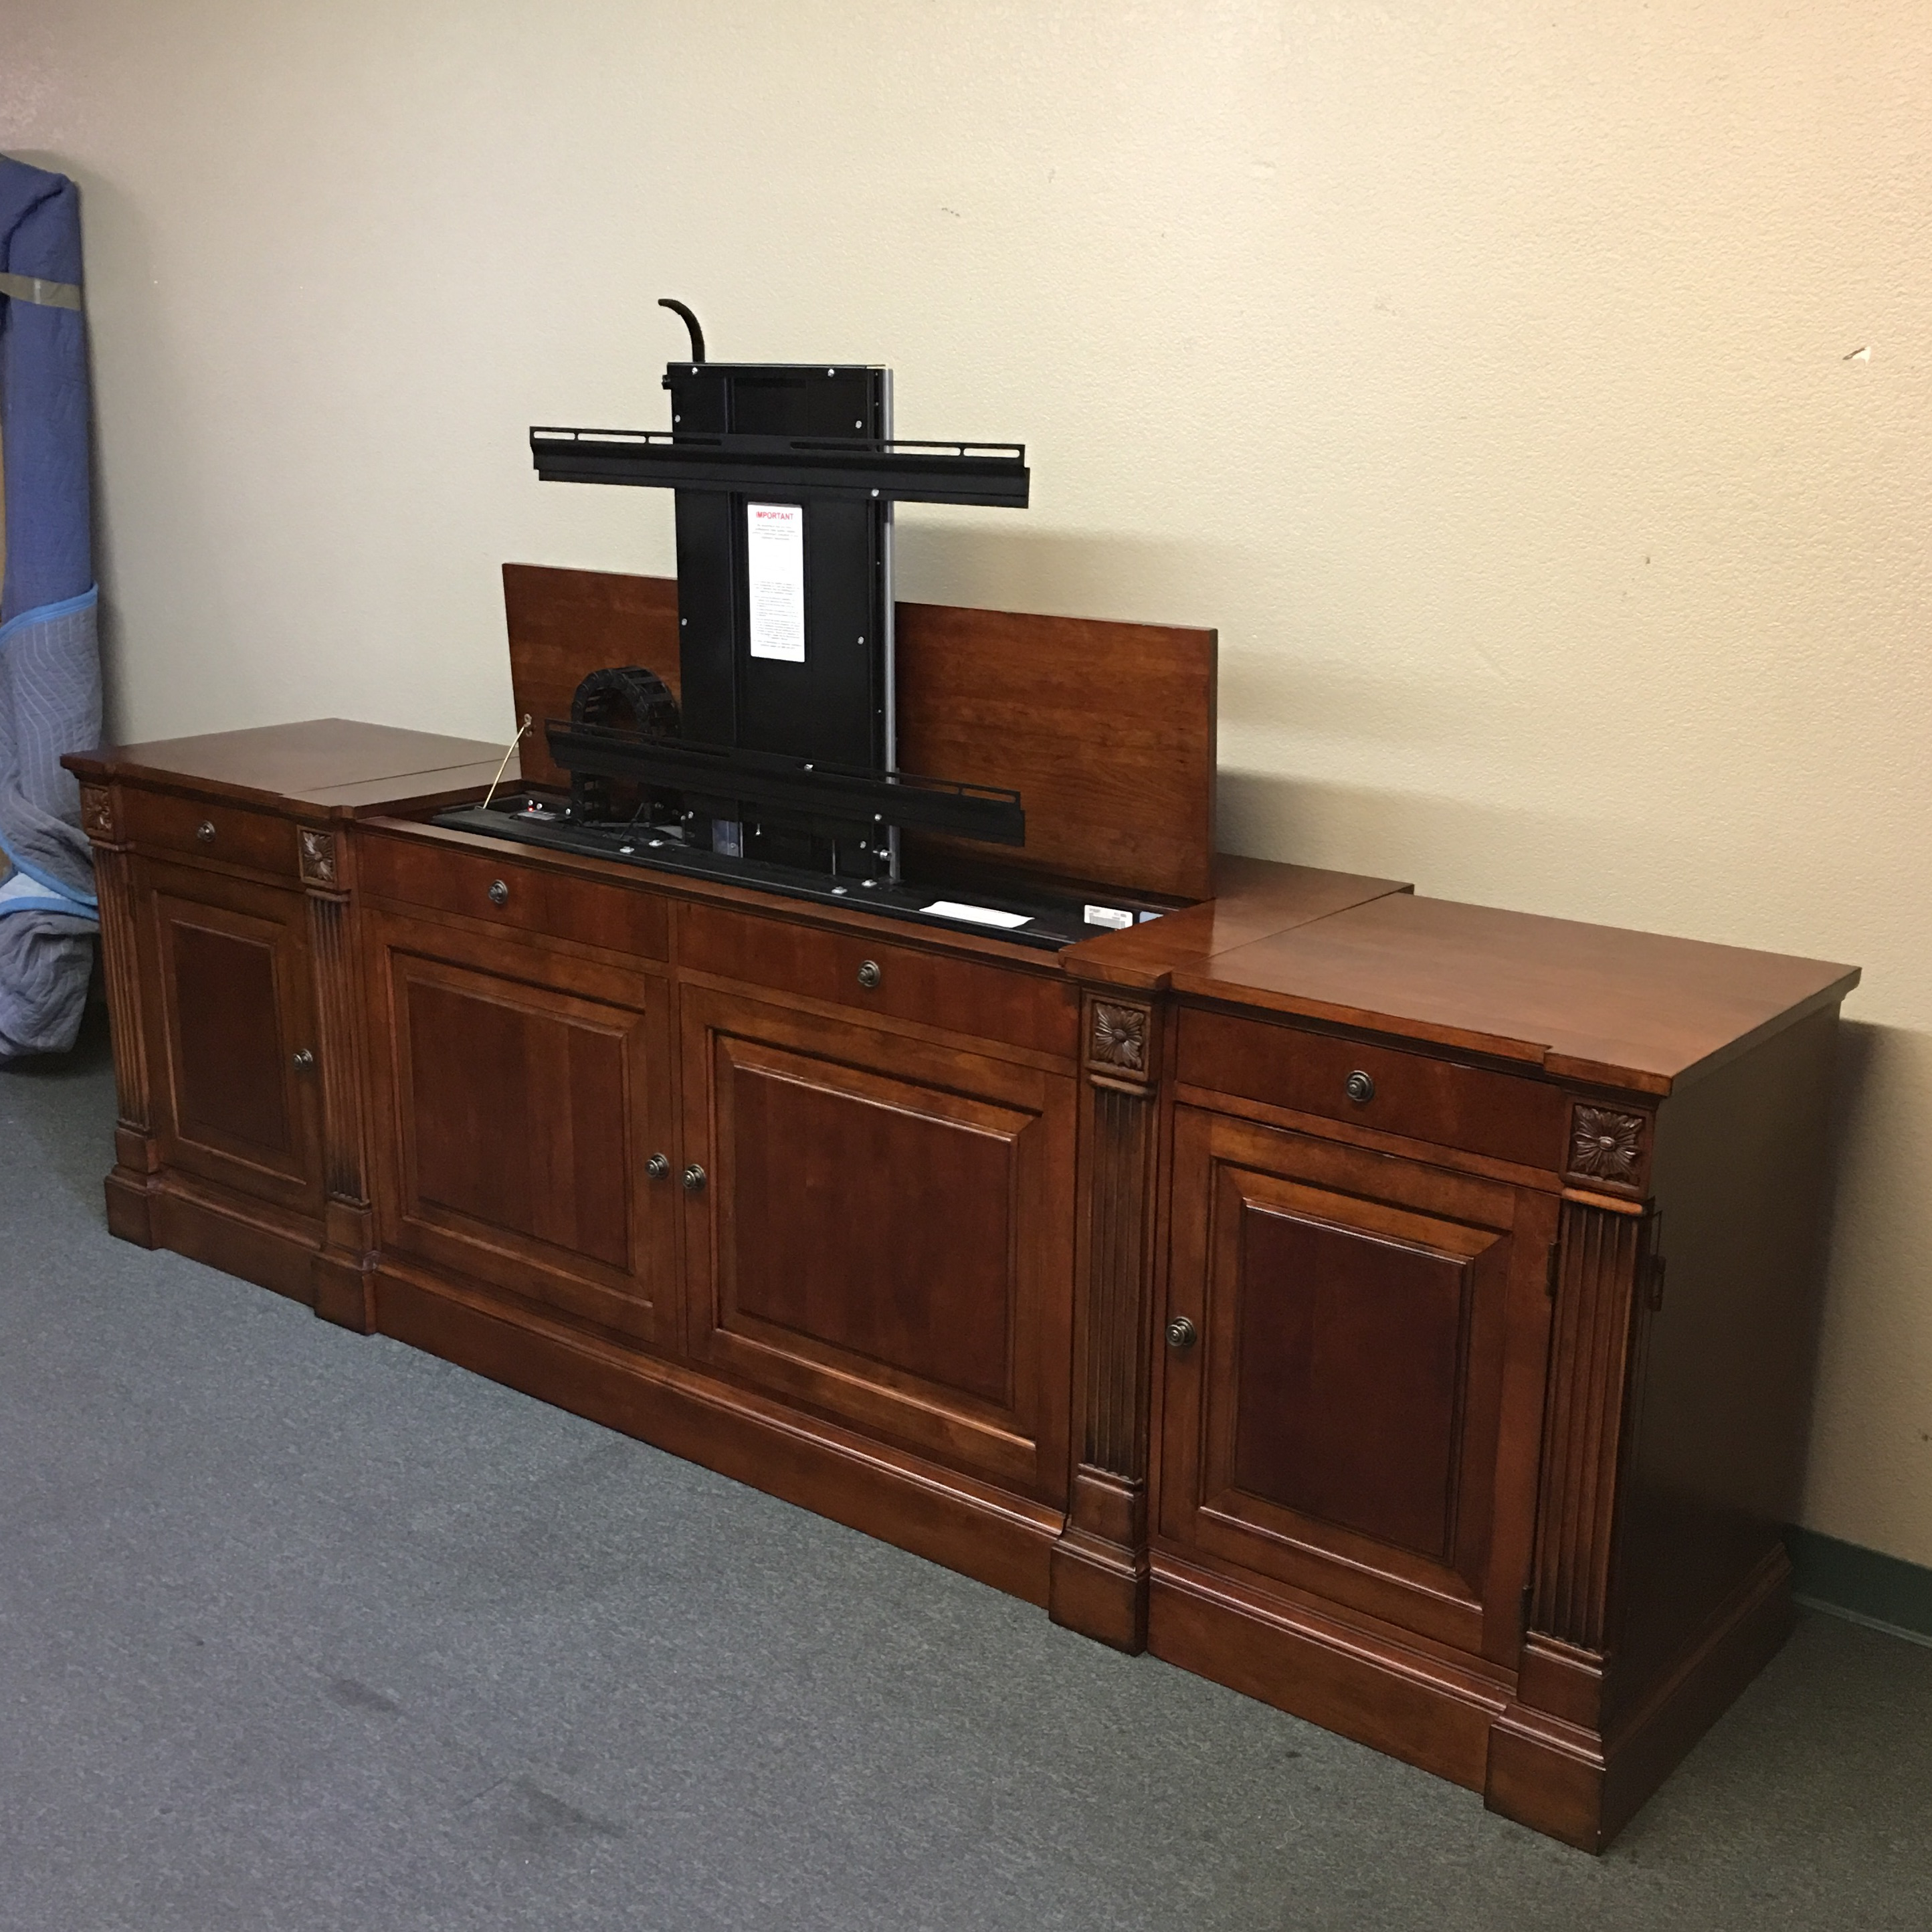 Attrayant Ethan Allen Ethan Allen Television Lift Cabinet For Sale   Image 4 Of 10